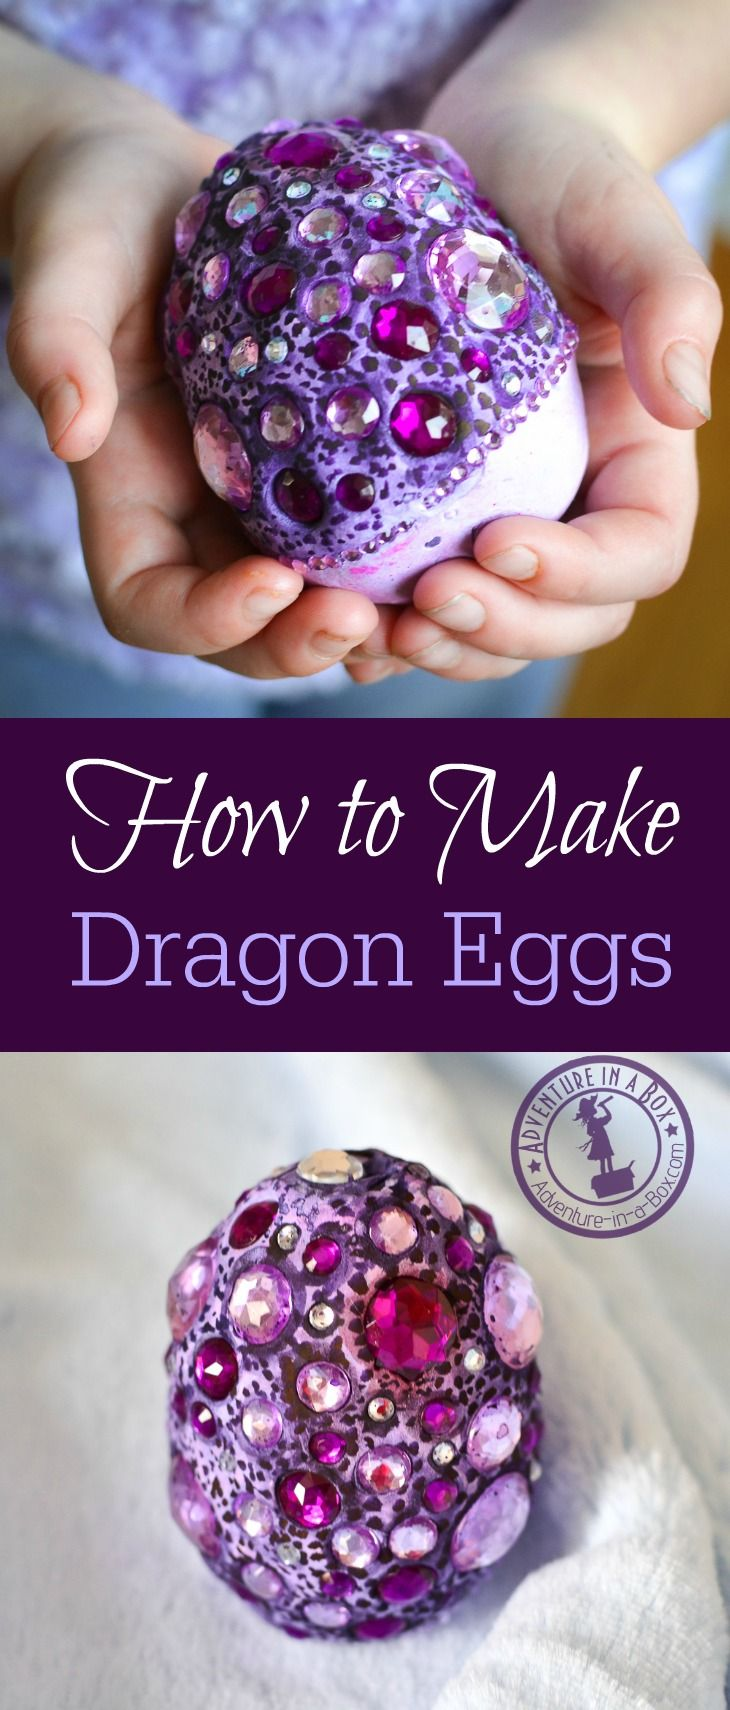 How to make dragon eggs from air-dry clay. Beautiful fantasy craft for kids. Fun project for Easter and all year round!